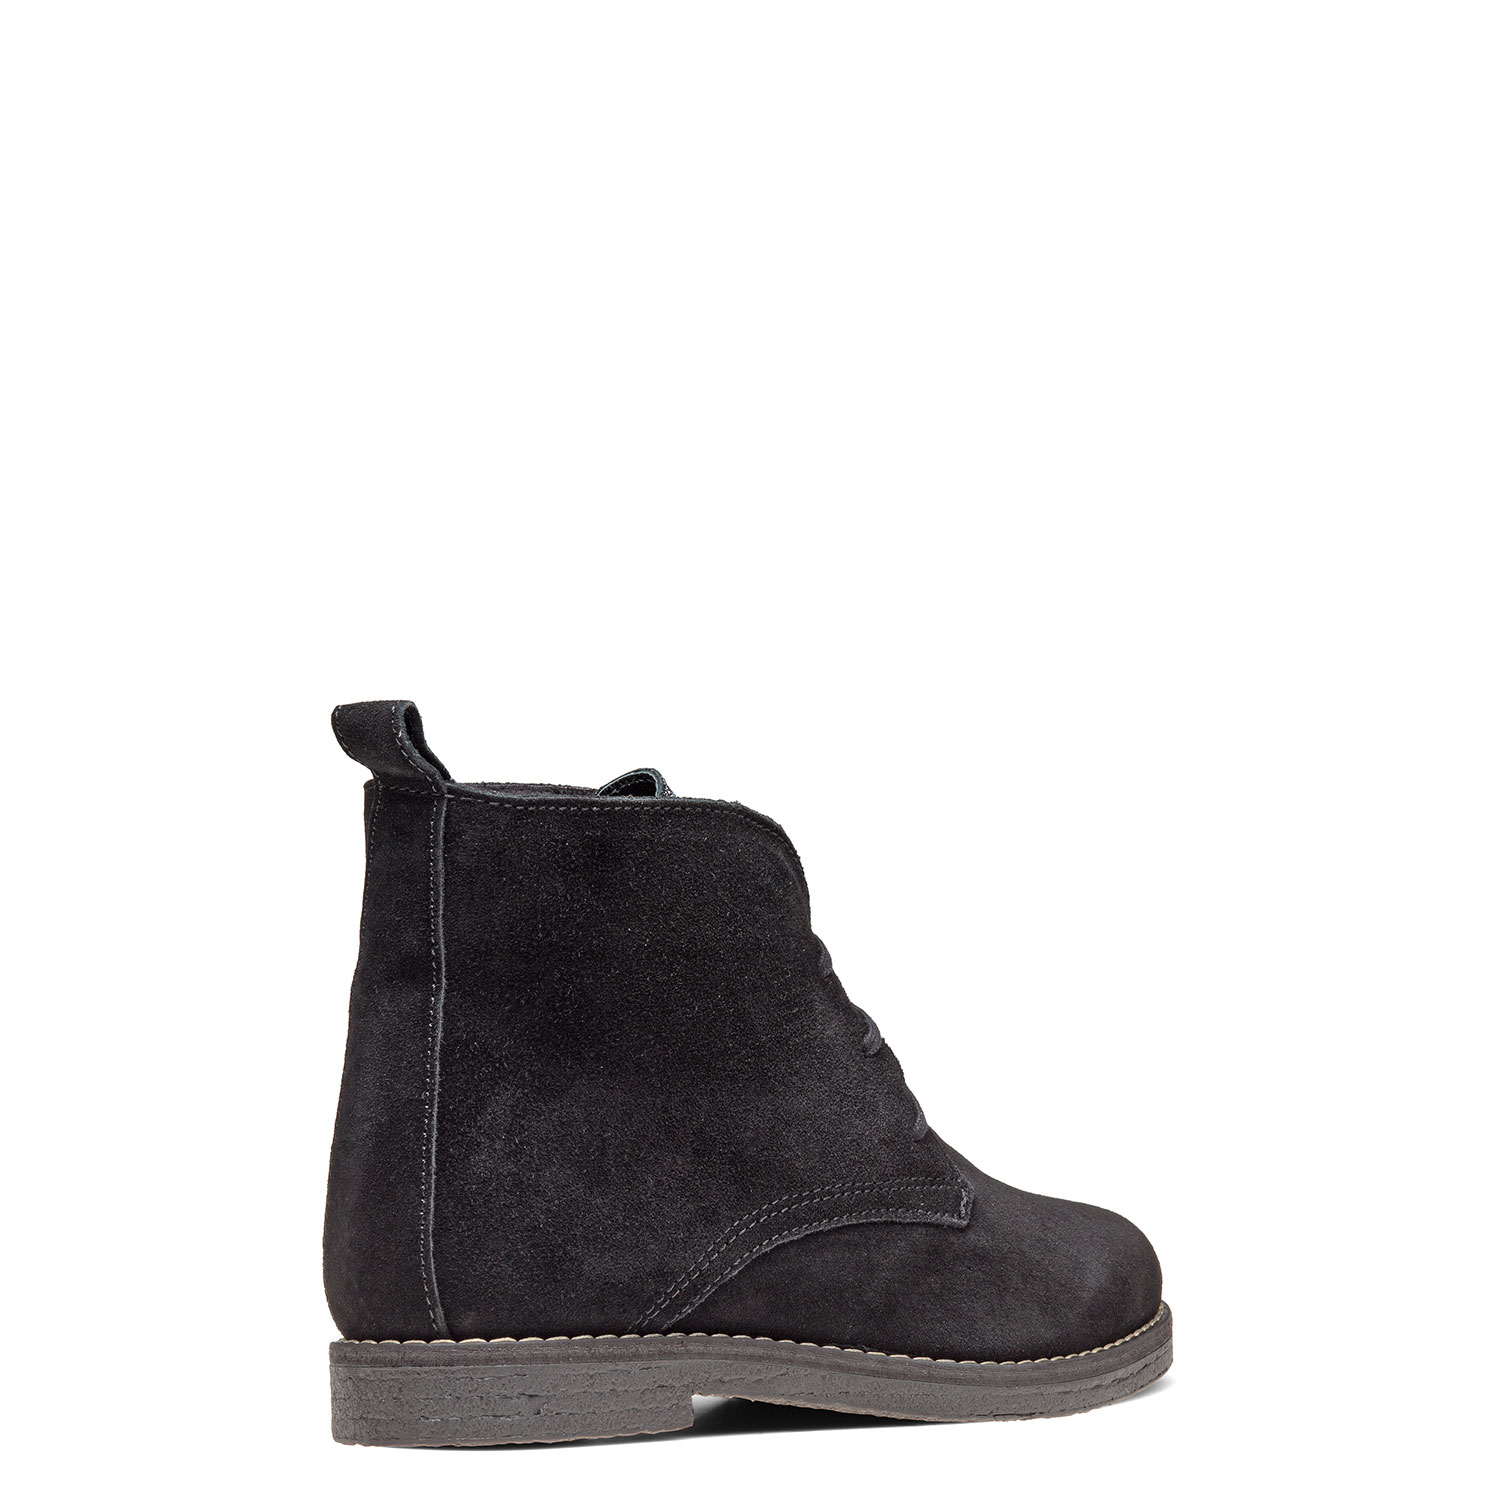 Women's cold weather ankle boots CARLO PAZOLINI SW-SNW3-1